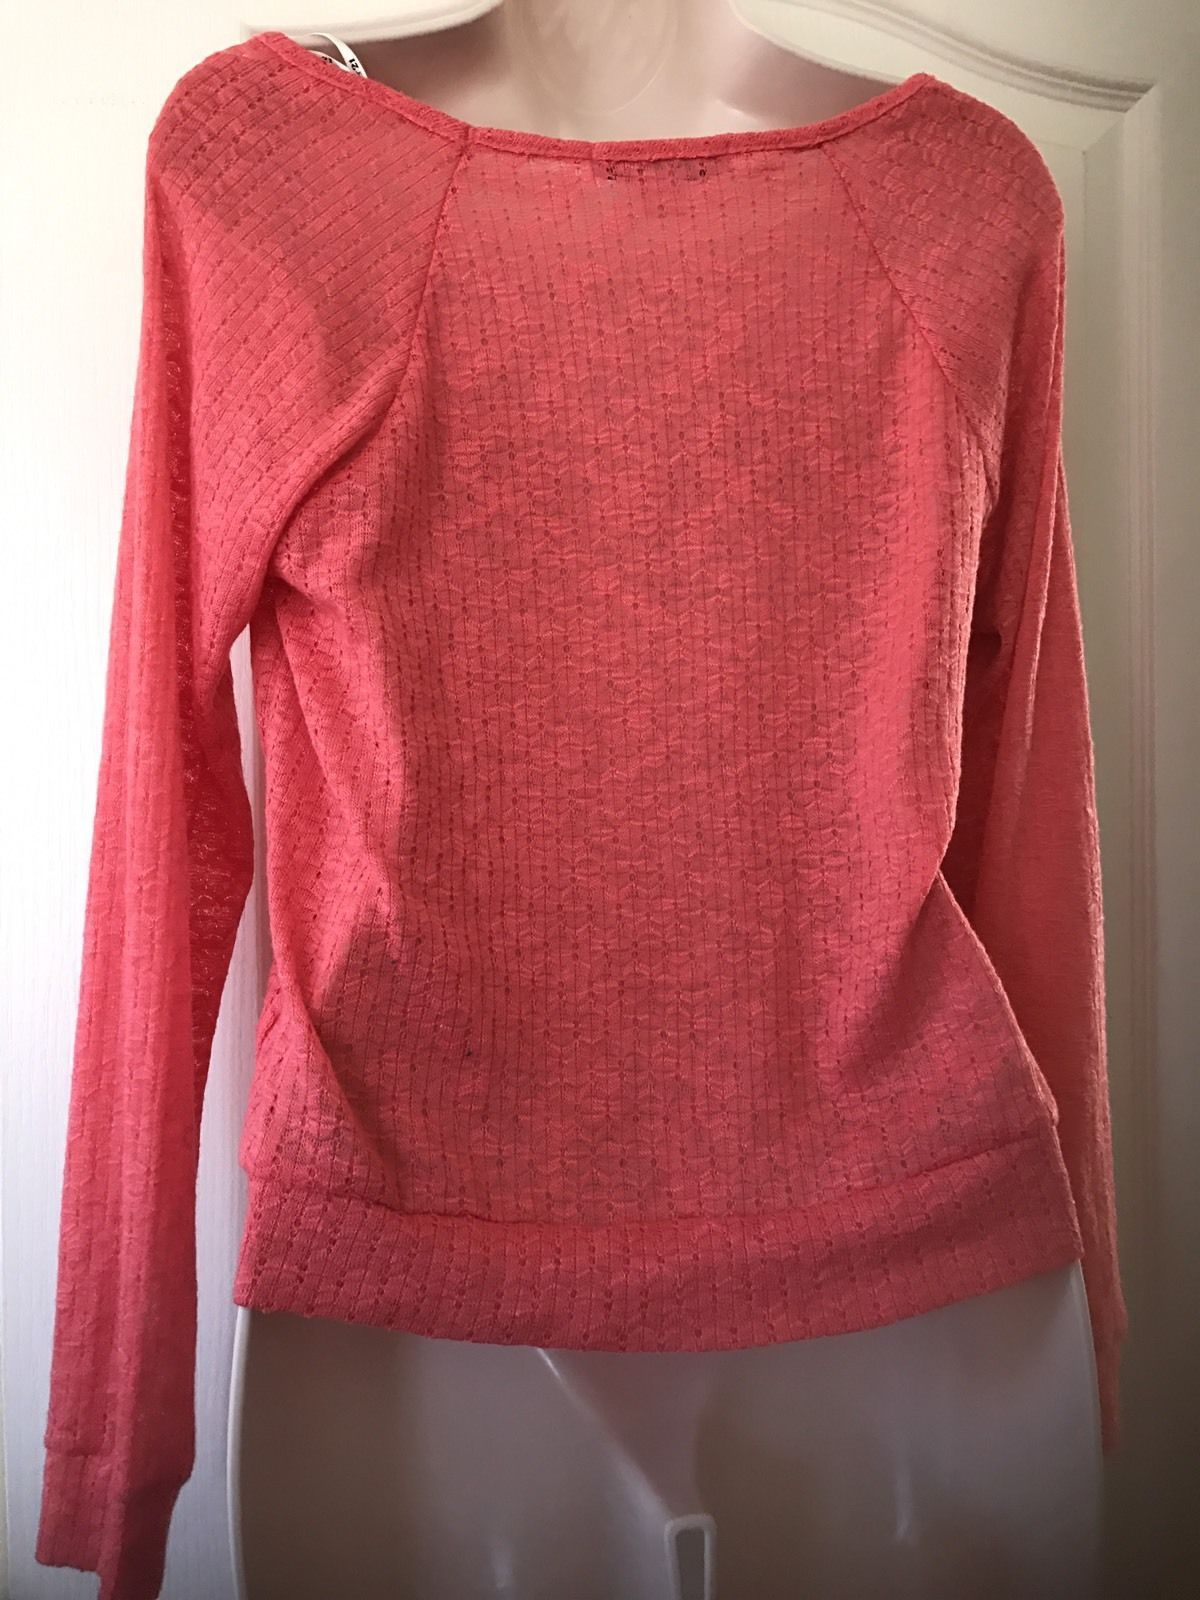 Knit Sweater Forever 21 Size Small